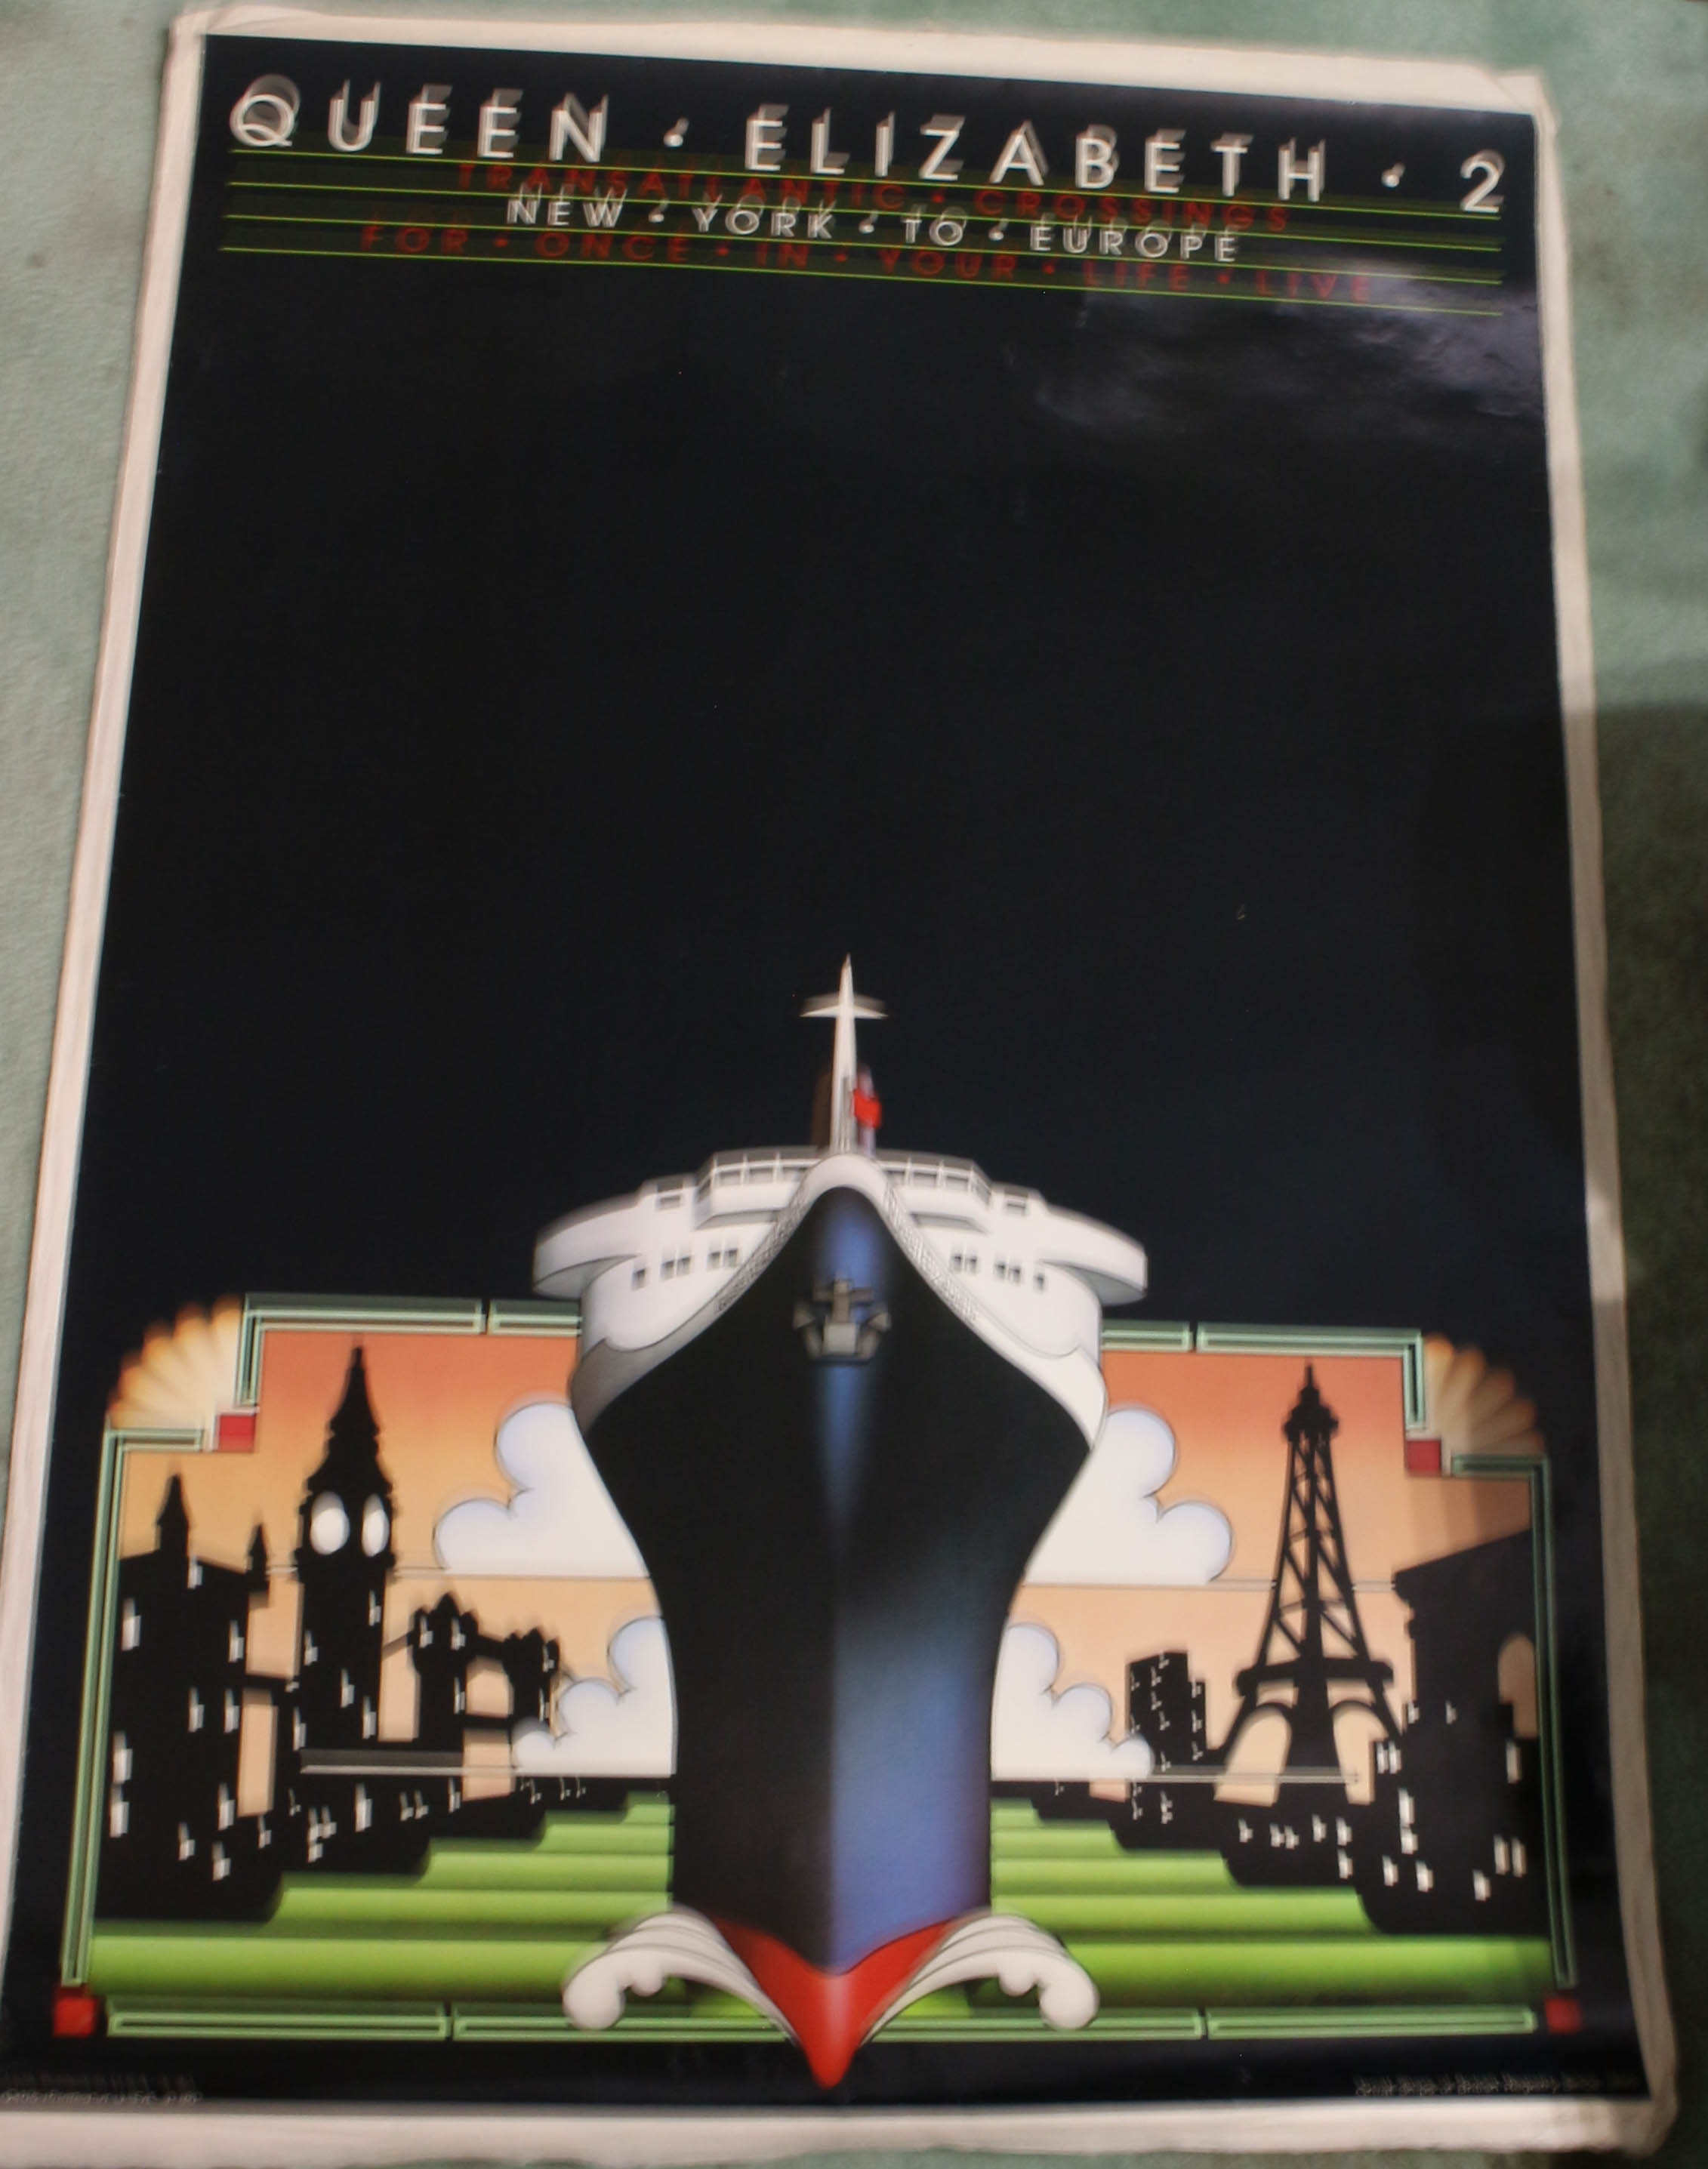 Image for Original Original Vintage Cunard Queen Elizabeth 2 Transatlantic Crossing Poster Free Domestic Shipping